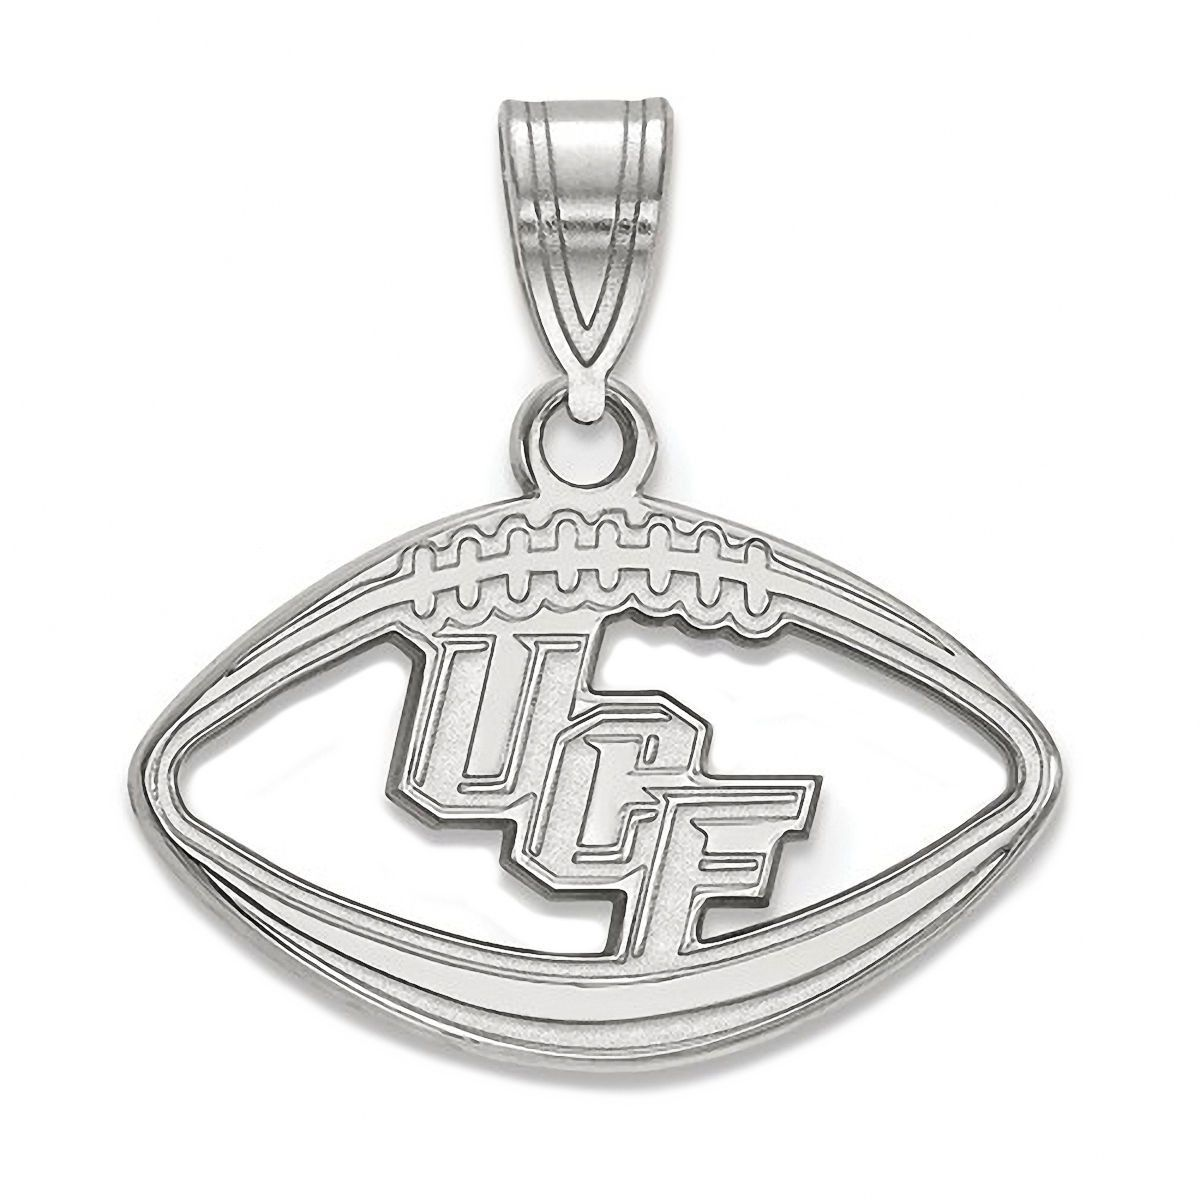 925 Sterling Silver Officially Licensed Penn State University College Pendant in Football